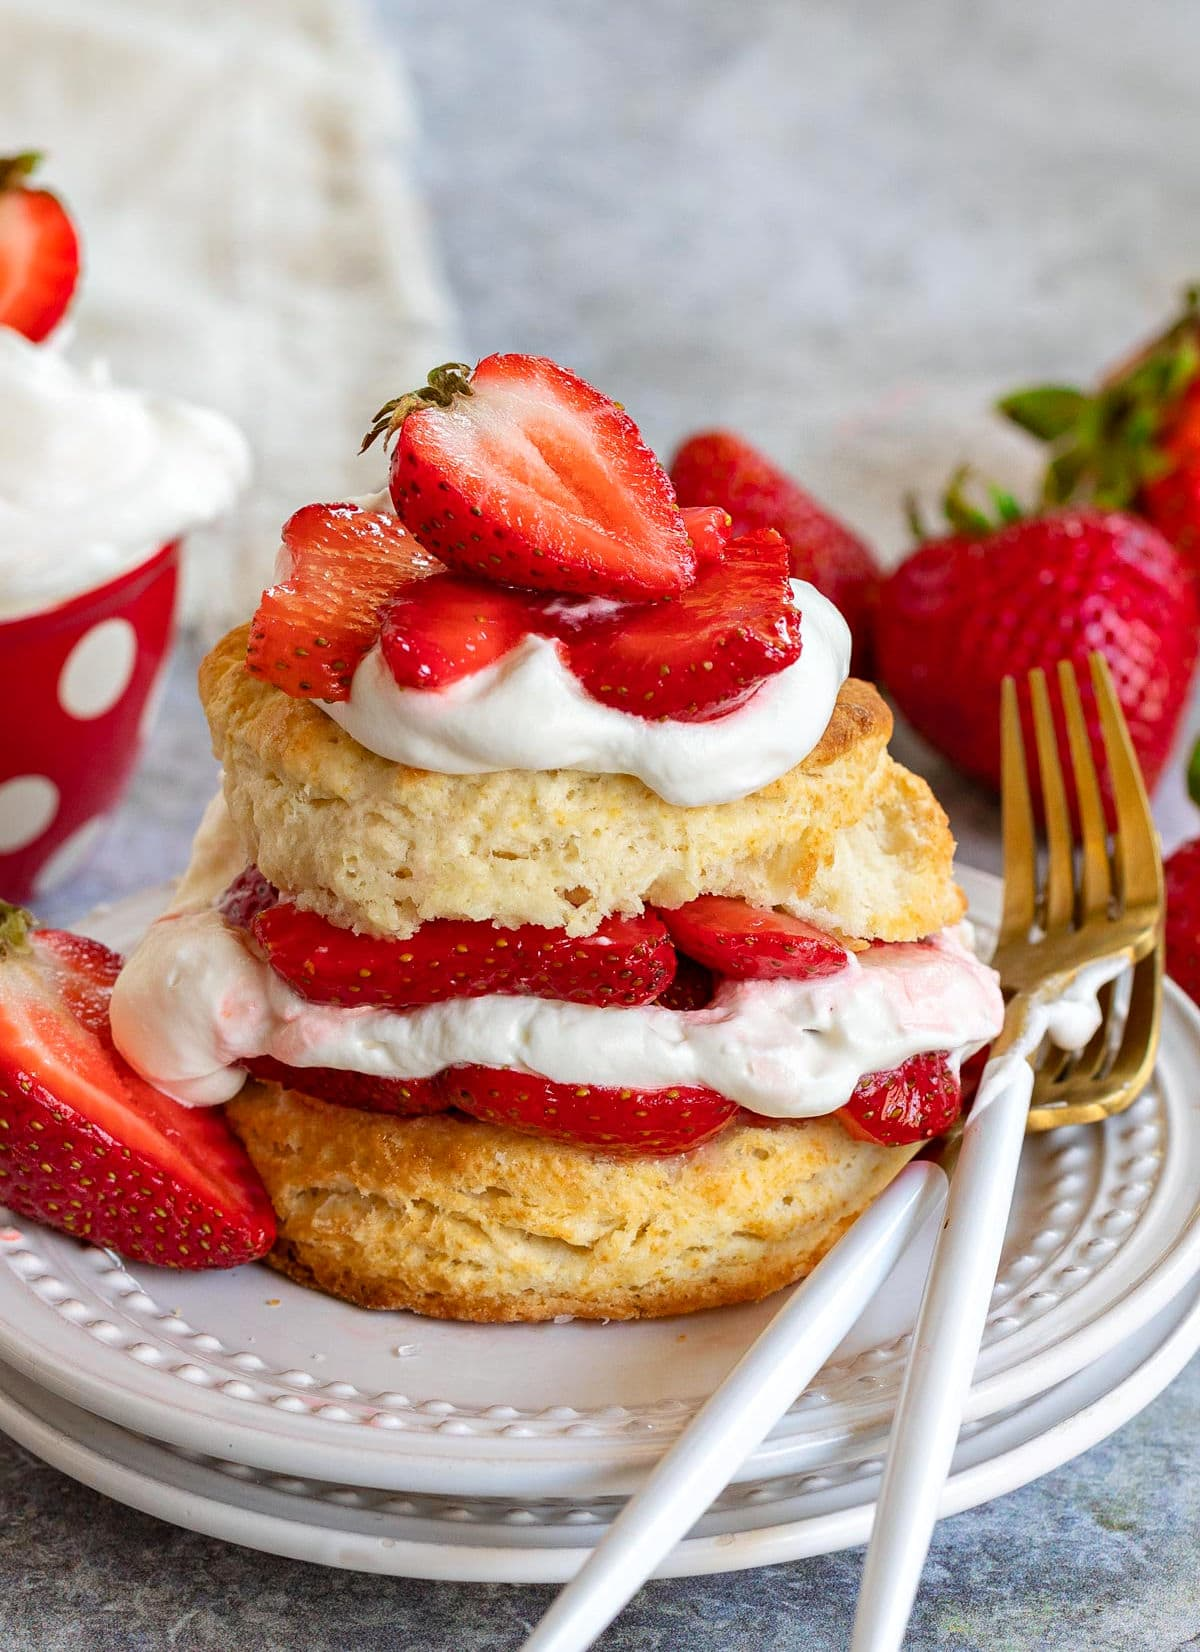 strawberry shortcake on white plate with layers of macerated strawberries and freshly whipped cream. two forks resting on the edge of the plate on one side and half a strawberry on the other. beige napkin in background.